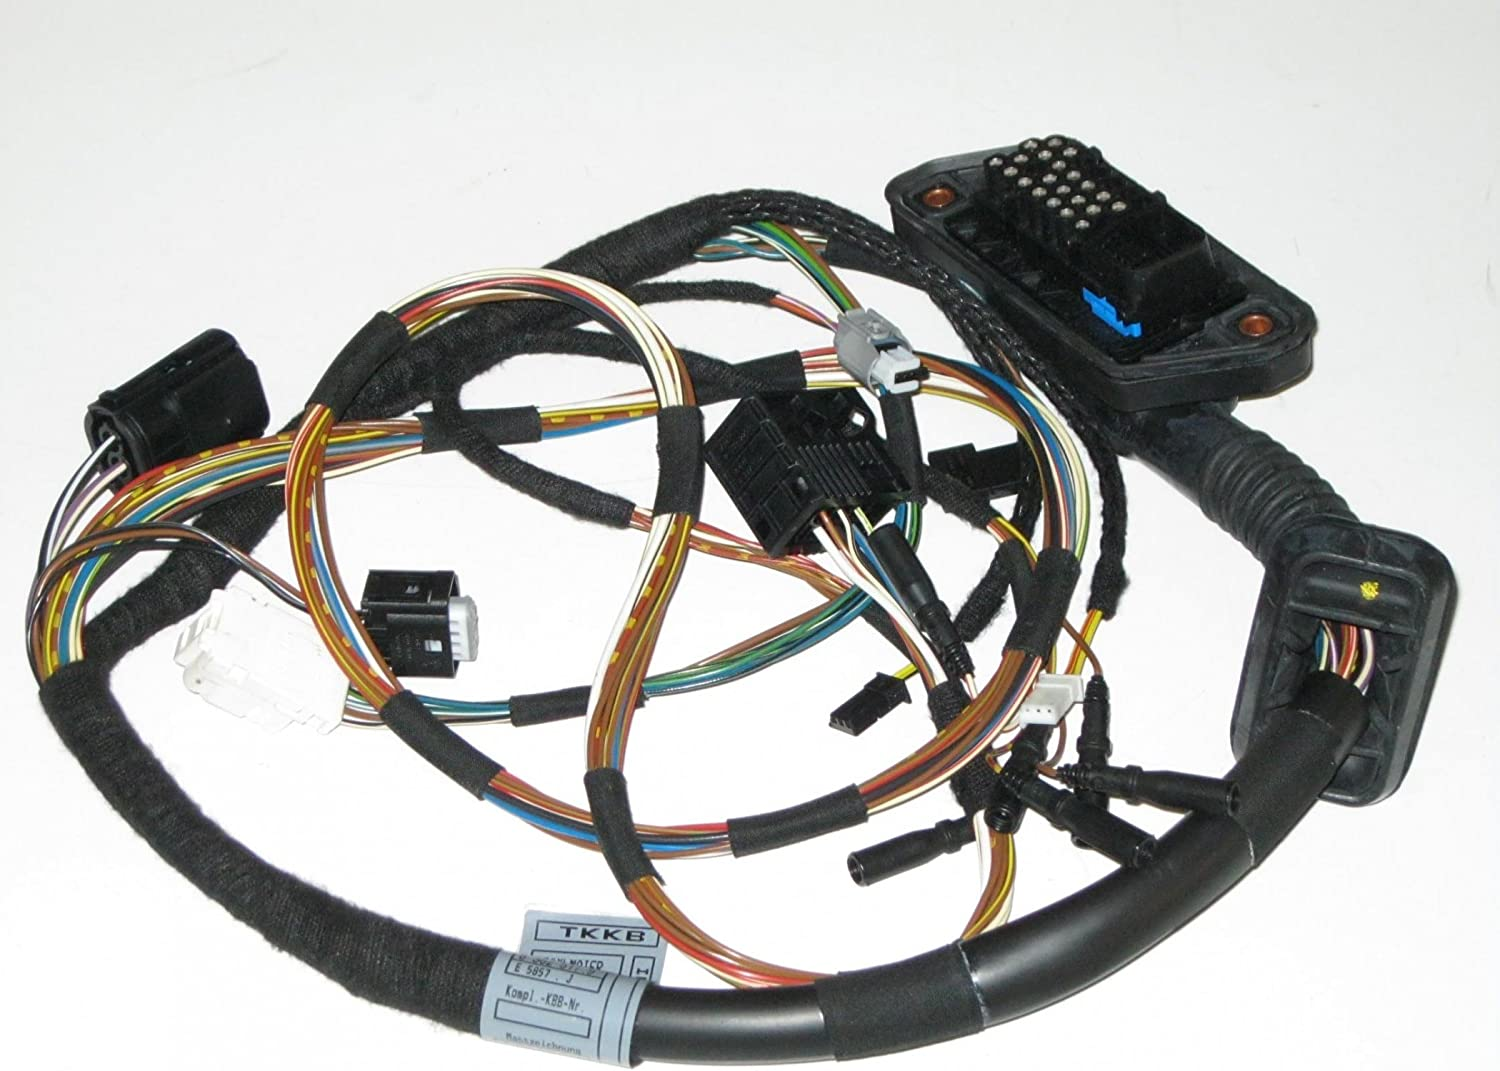 Bmw E36 Wiring Harness from images-na.ssl-images-amazon.com